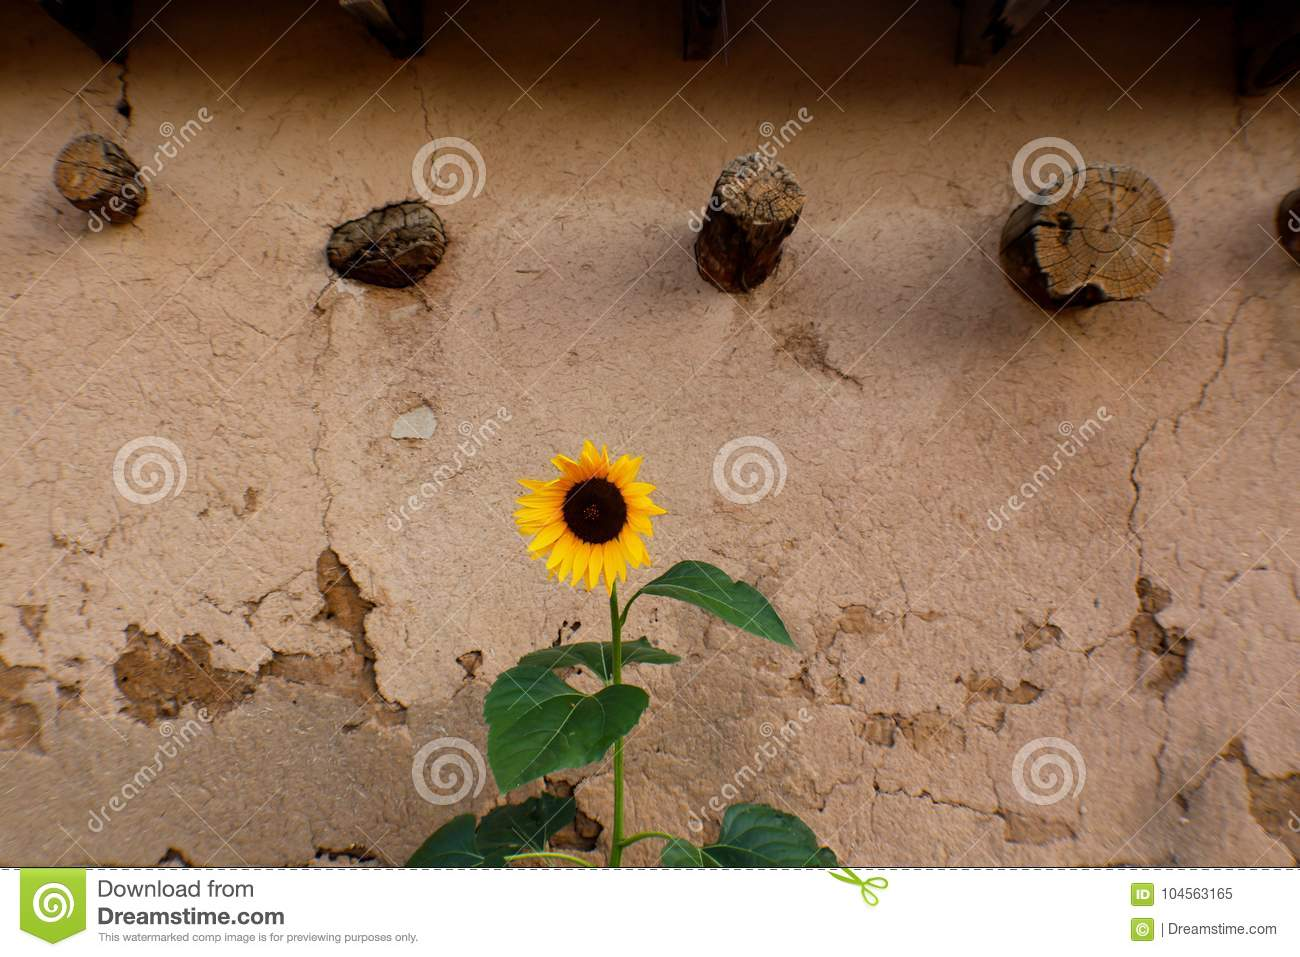 Sunflower Growing Against Stucco Wall In Taos New Mexico Stock Image